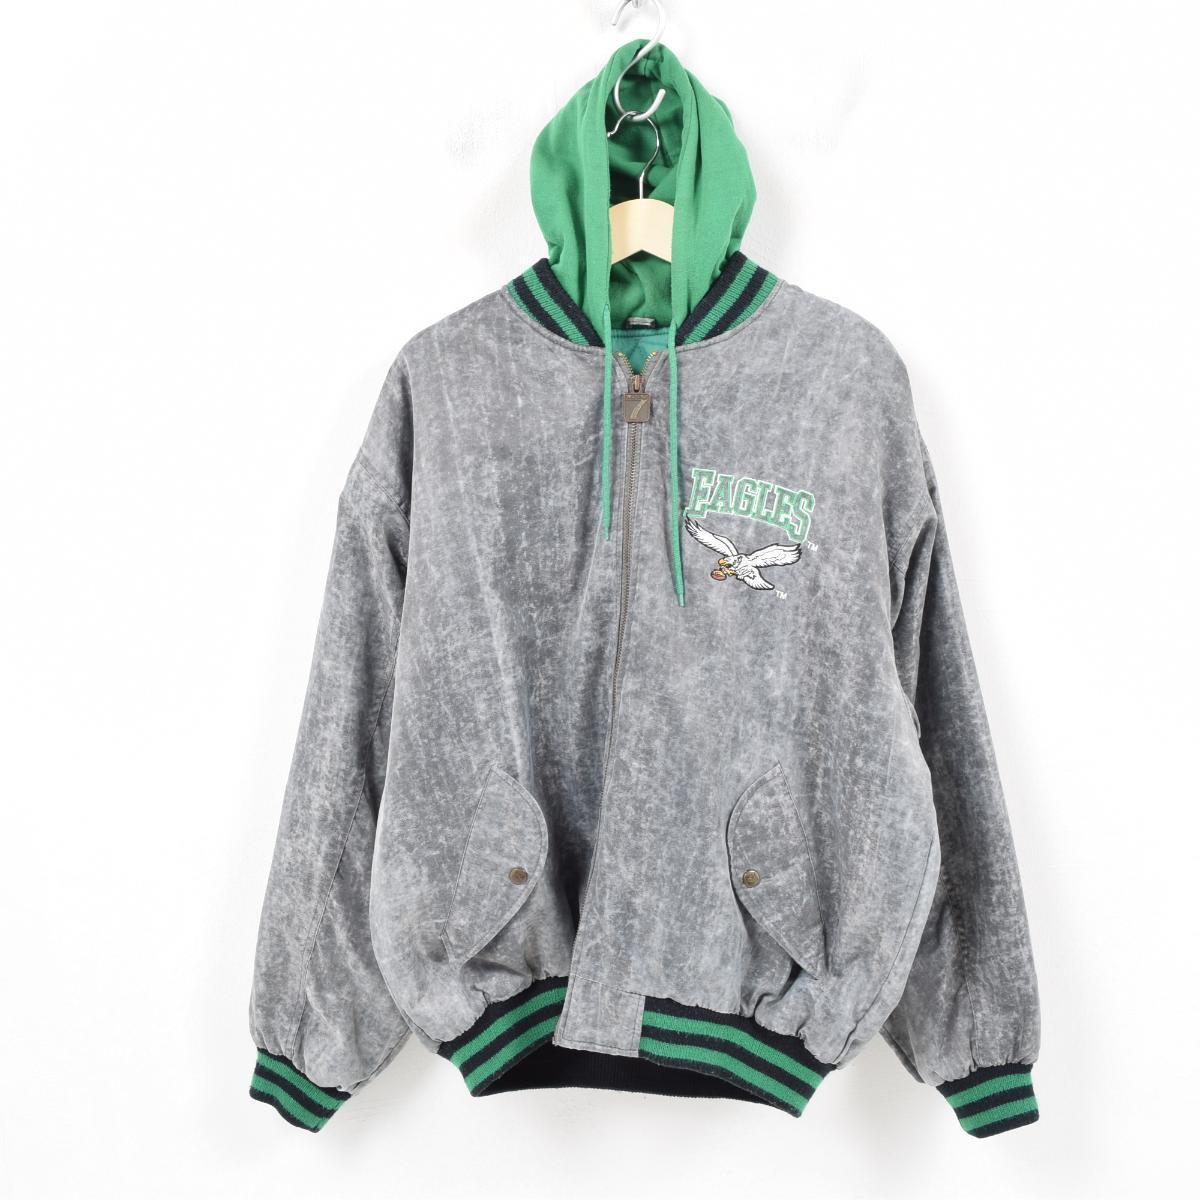 info for 4cc21 7e476 Nylon award jacket Award jacket men L /wau8337 with the LOGO 7 NFL  PHILADELPHIA EAGLES Philadelphia Eagles sweat shirt food